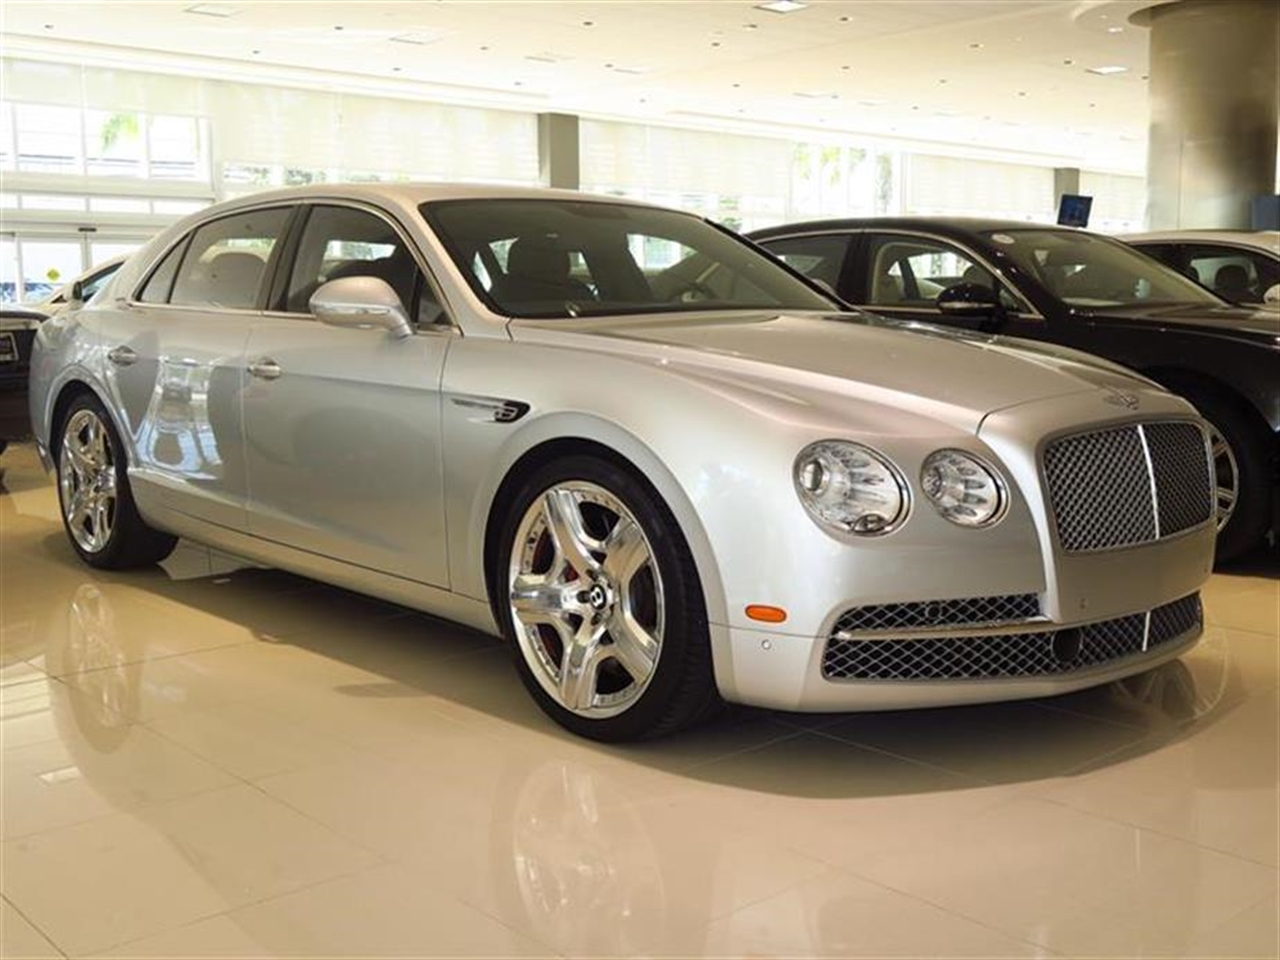 2014 BENTLEY FLYING SPUR 4dr Sdn 2323 miles 10-Way Power Driver Seat -inc Power Recline Height